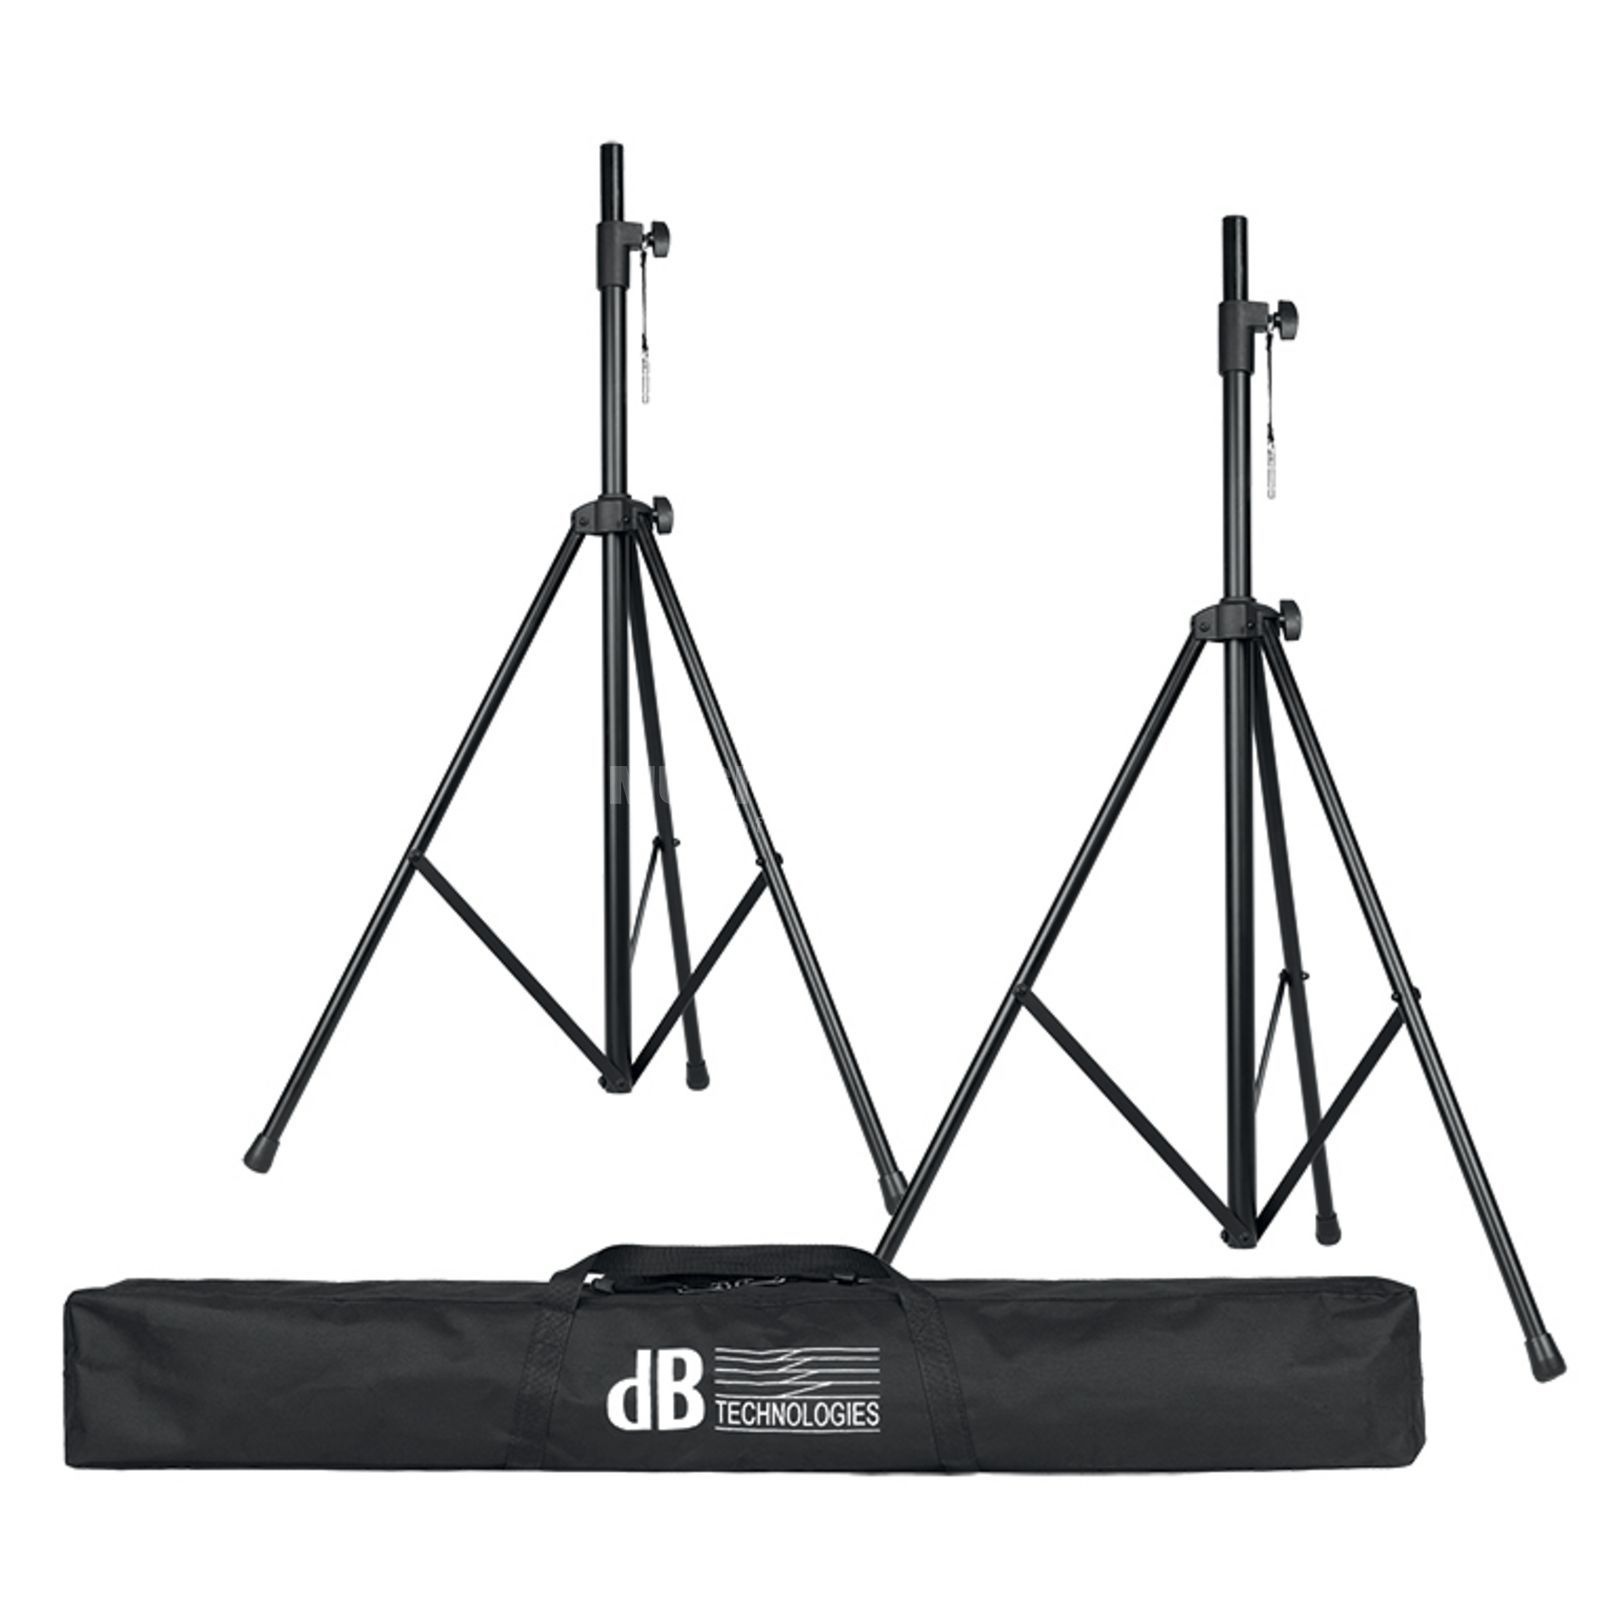 dB Technologies ES 503 Speaker Stand SK - 25TT Set 2 x Stativ & Bag Produktbild